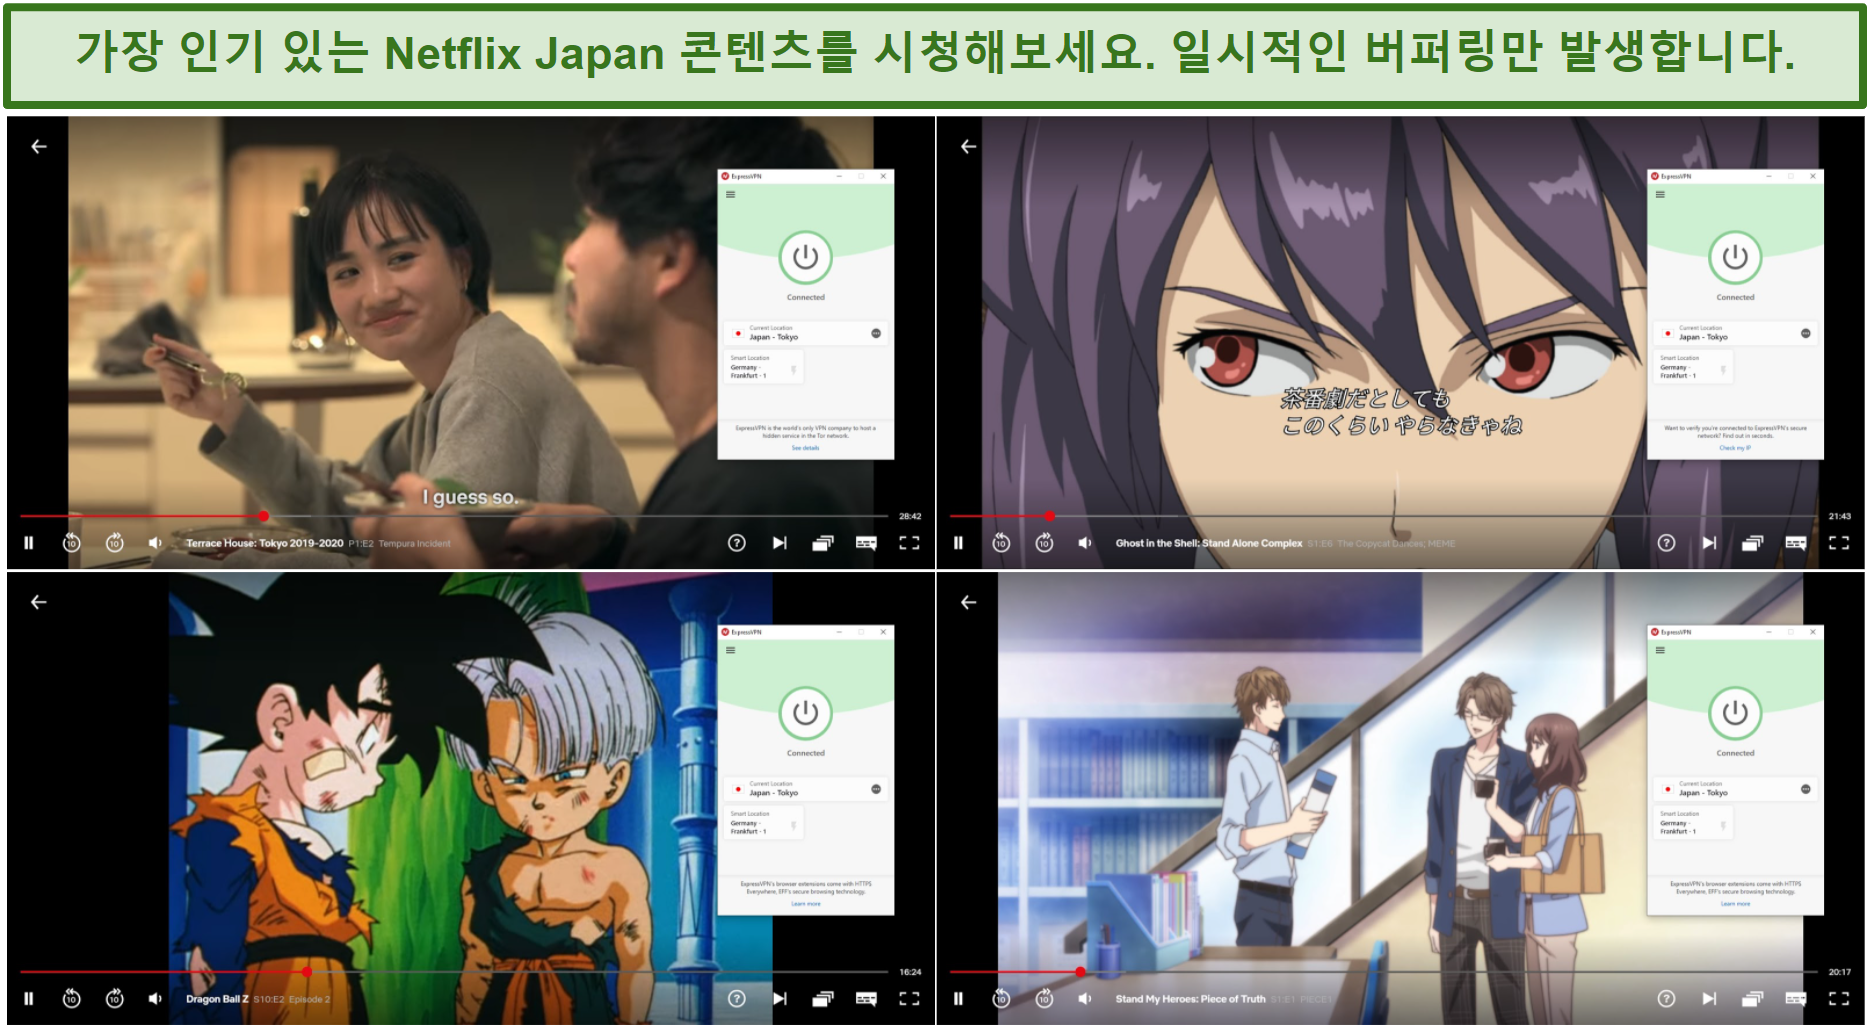 ExpressVPN 스트리밍 Terrace House : Tokyo, Ghost in the Shell : Stand Alone Complex, Dragon Ball Z, Stand My Heroes : Piece of Truth from Netflix Japan의 스크린 샷